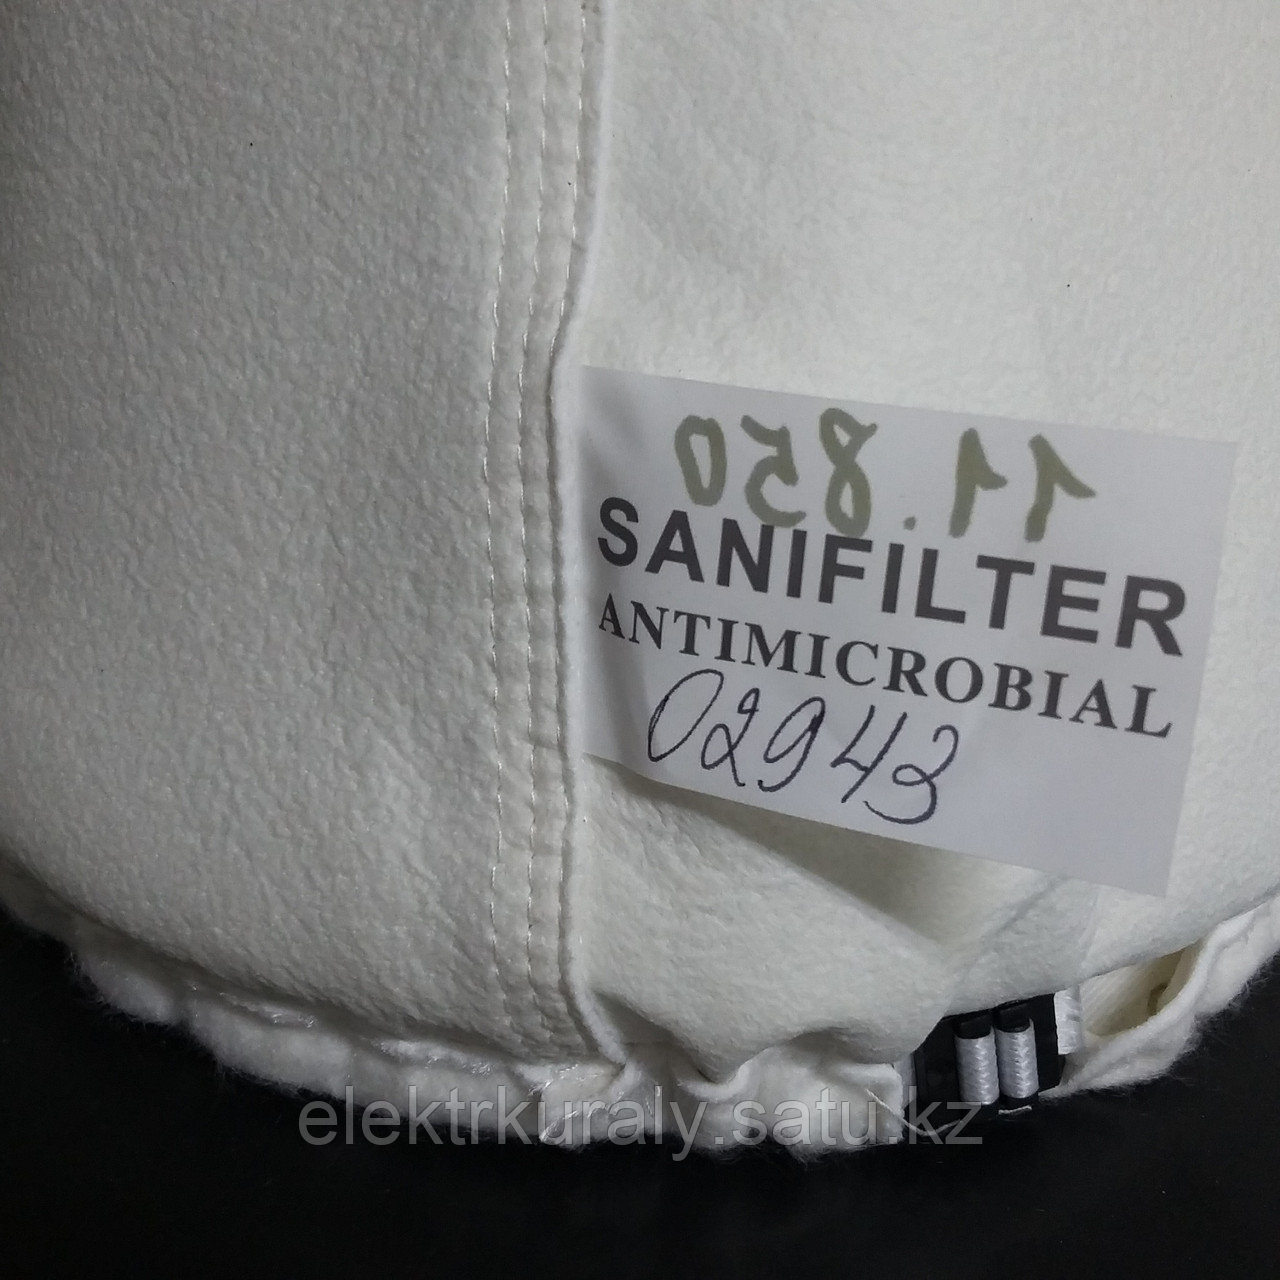 Фильтр в сборе SOTECO SANIFILTER ANTIMICROBIAL 02943